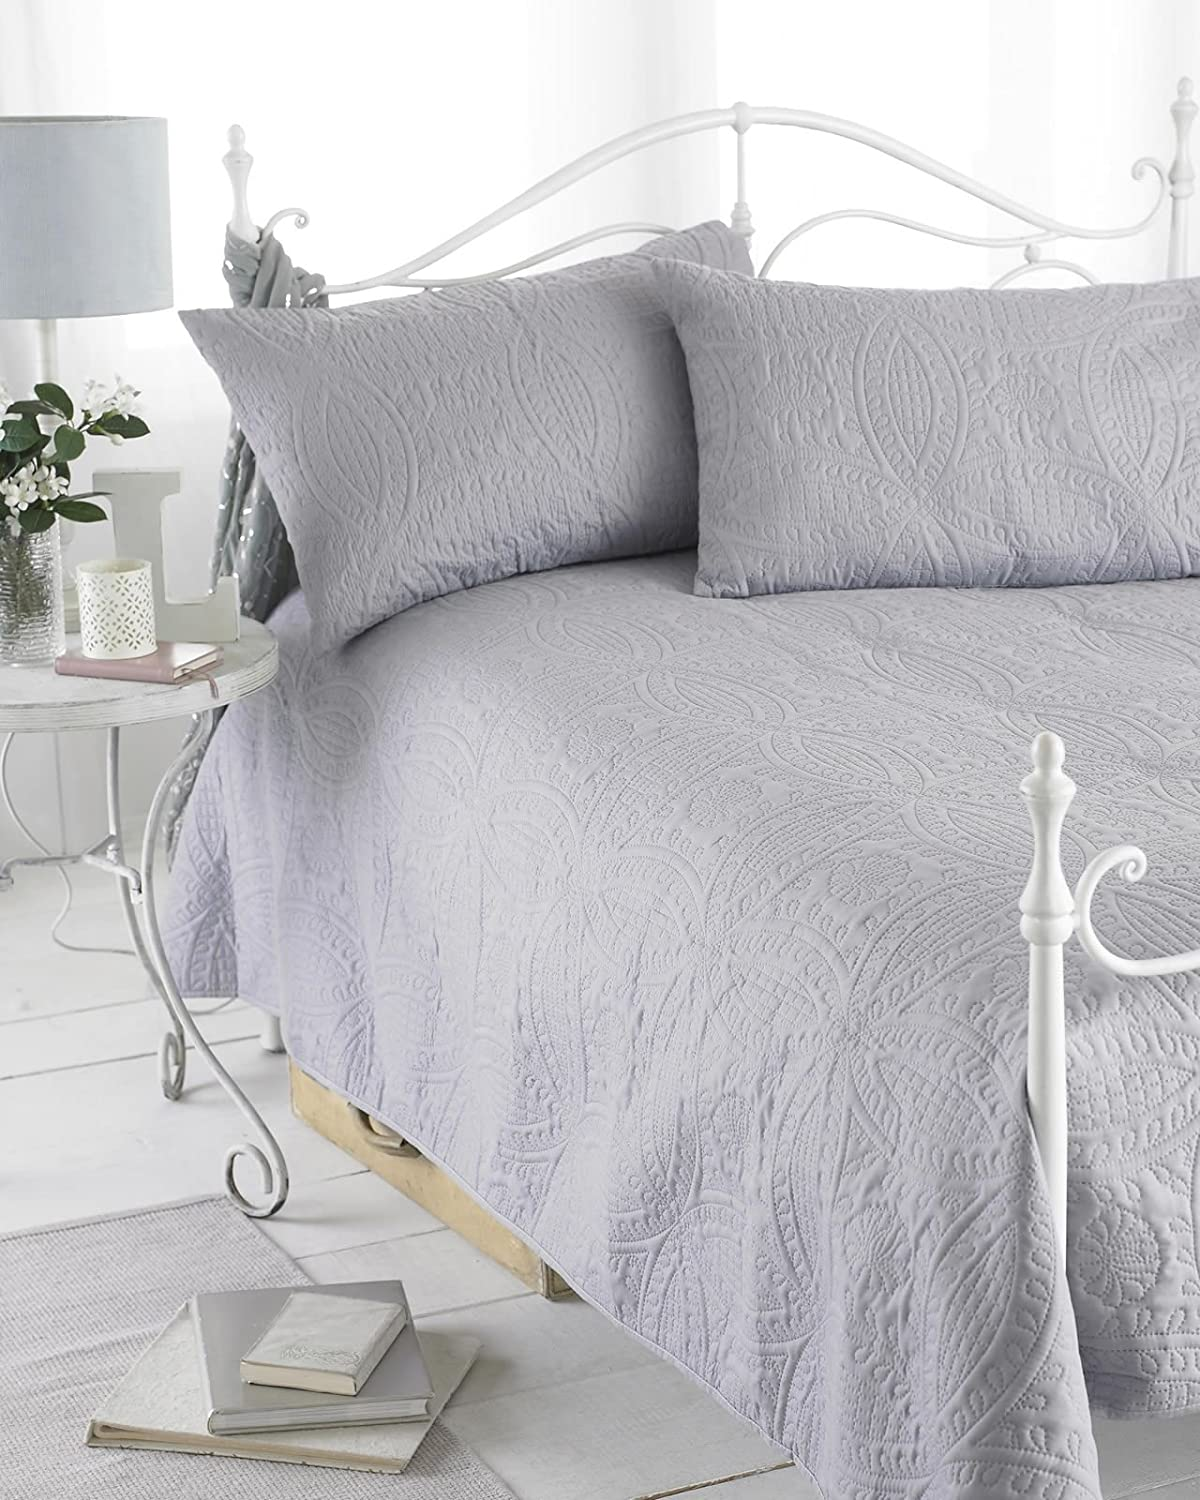 Grey Reversible Embossed Quilted Bedspread, Parisienne, Includes 2 ... : grey quilted comforter - Adamdwight.com